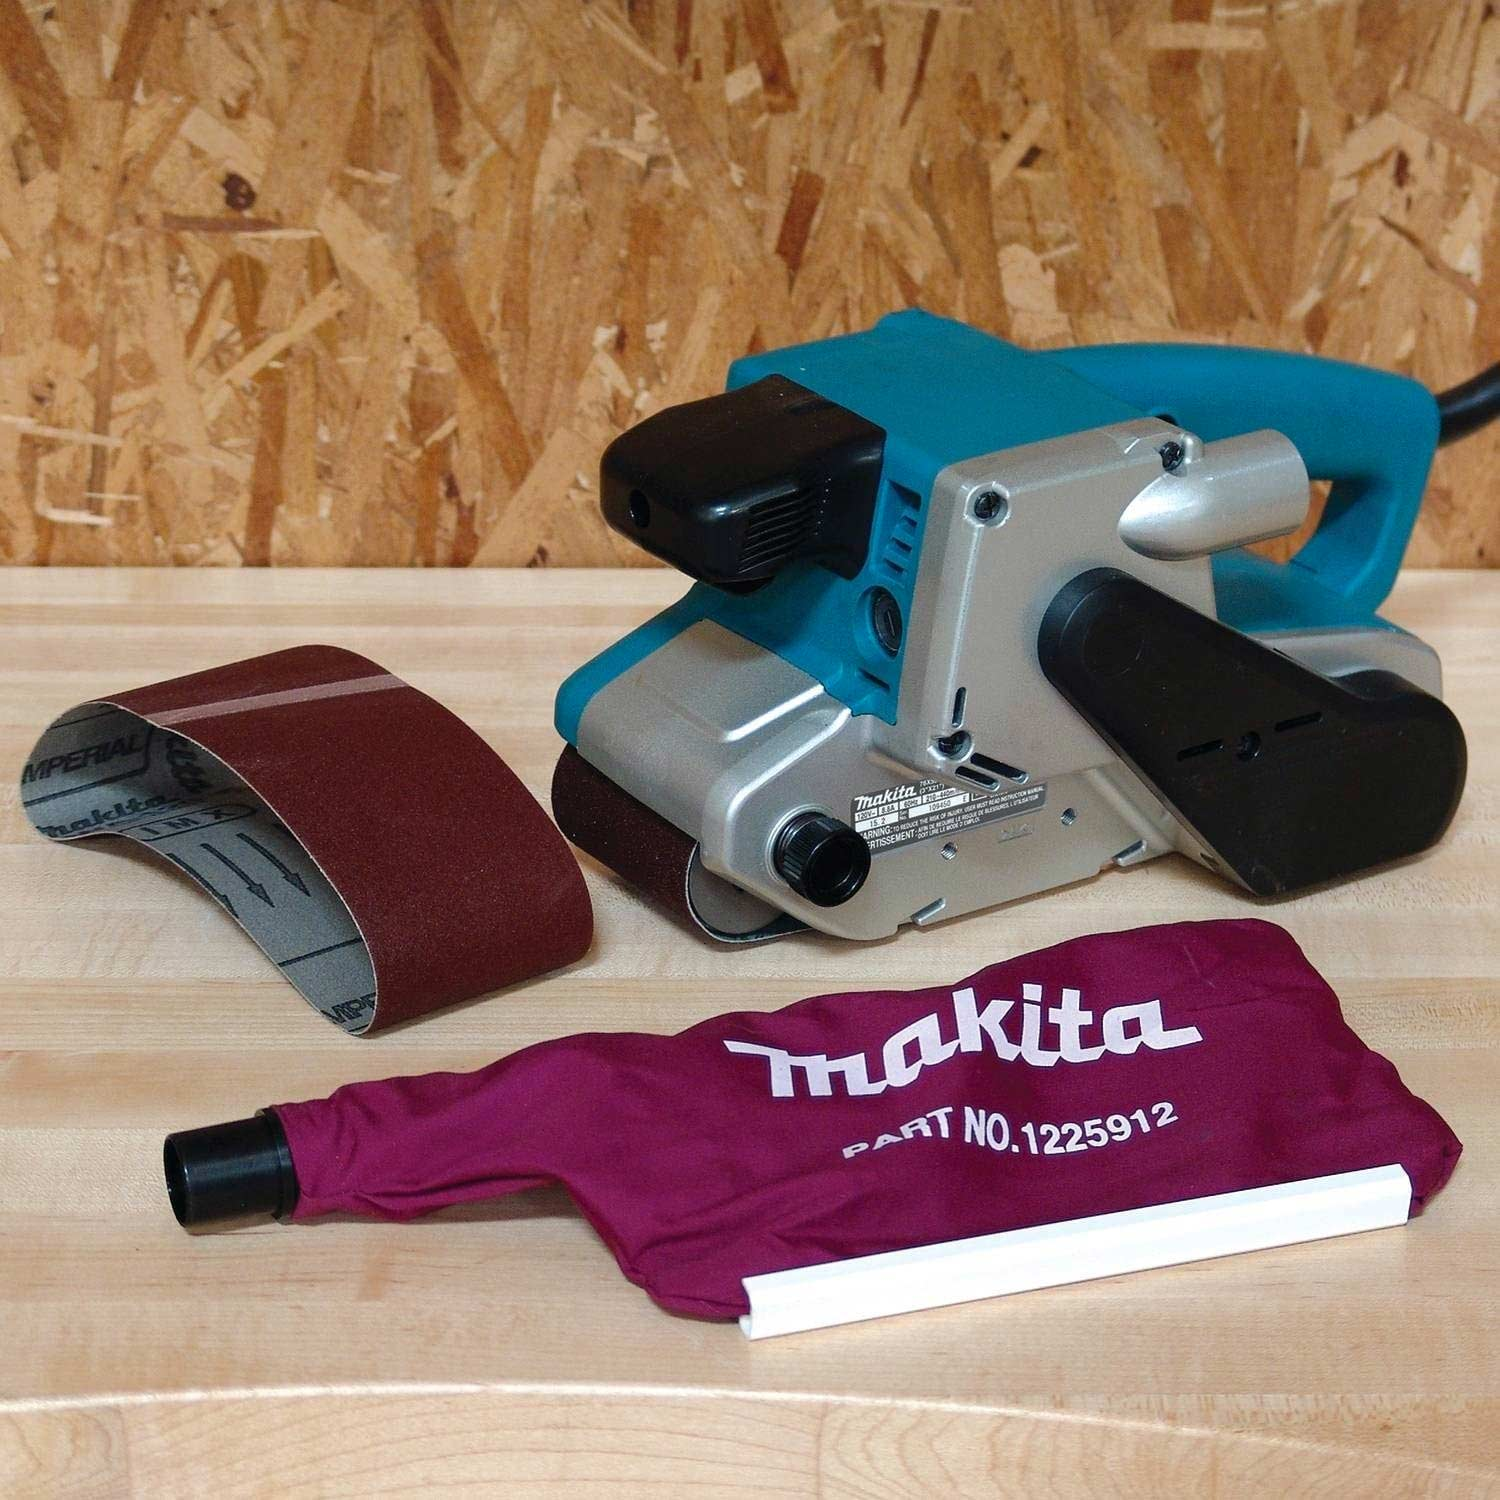 Makita 8.8 Amp 3-Inch-by-21-Inch Variable Speed Belt Sander with Cloth Dust Bag